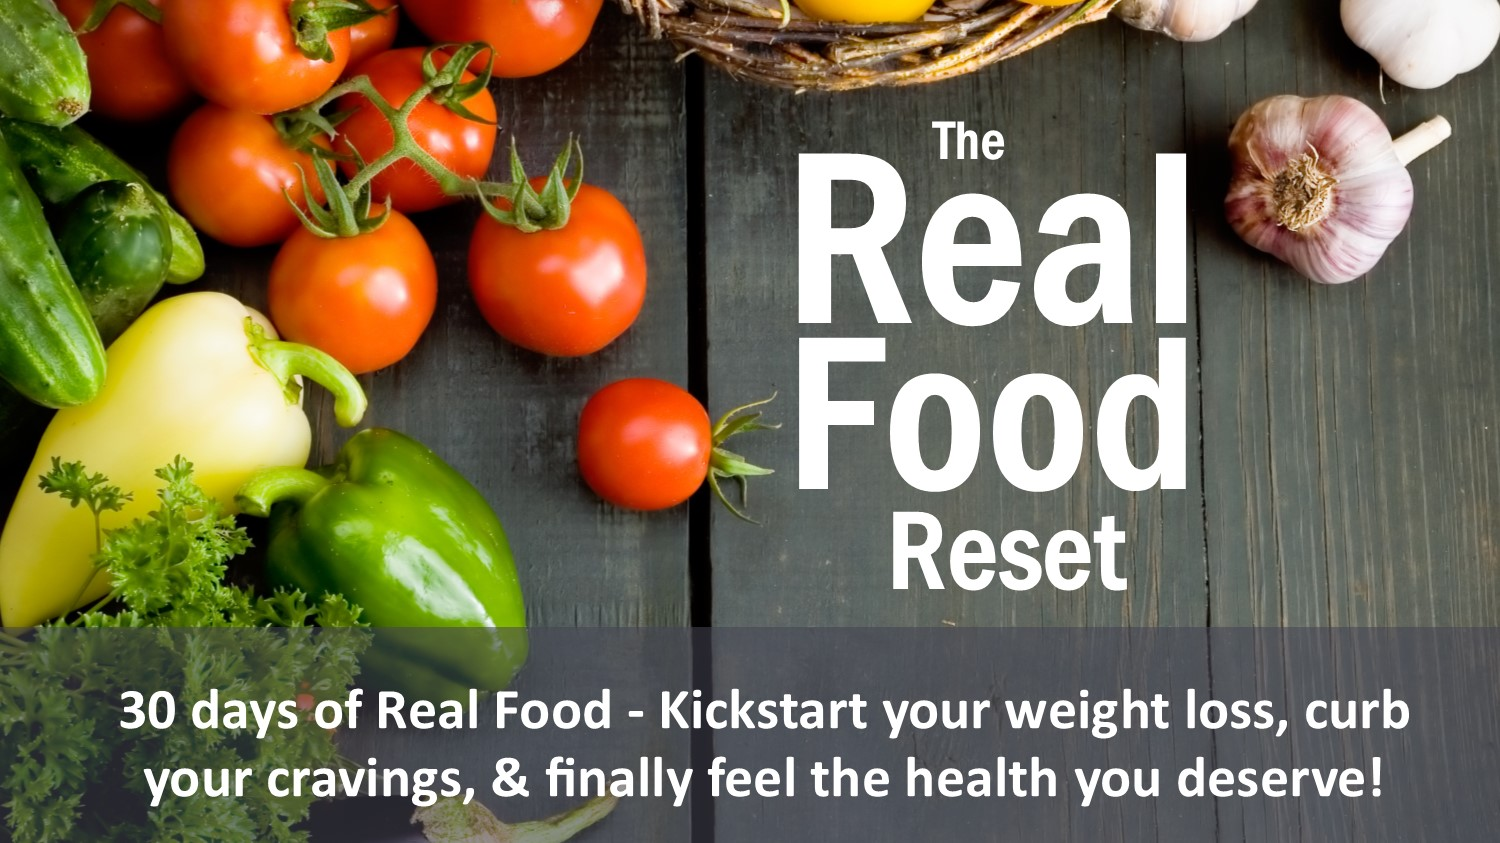 Real Food Reset Course - 30 days of real food